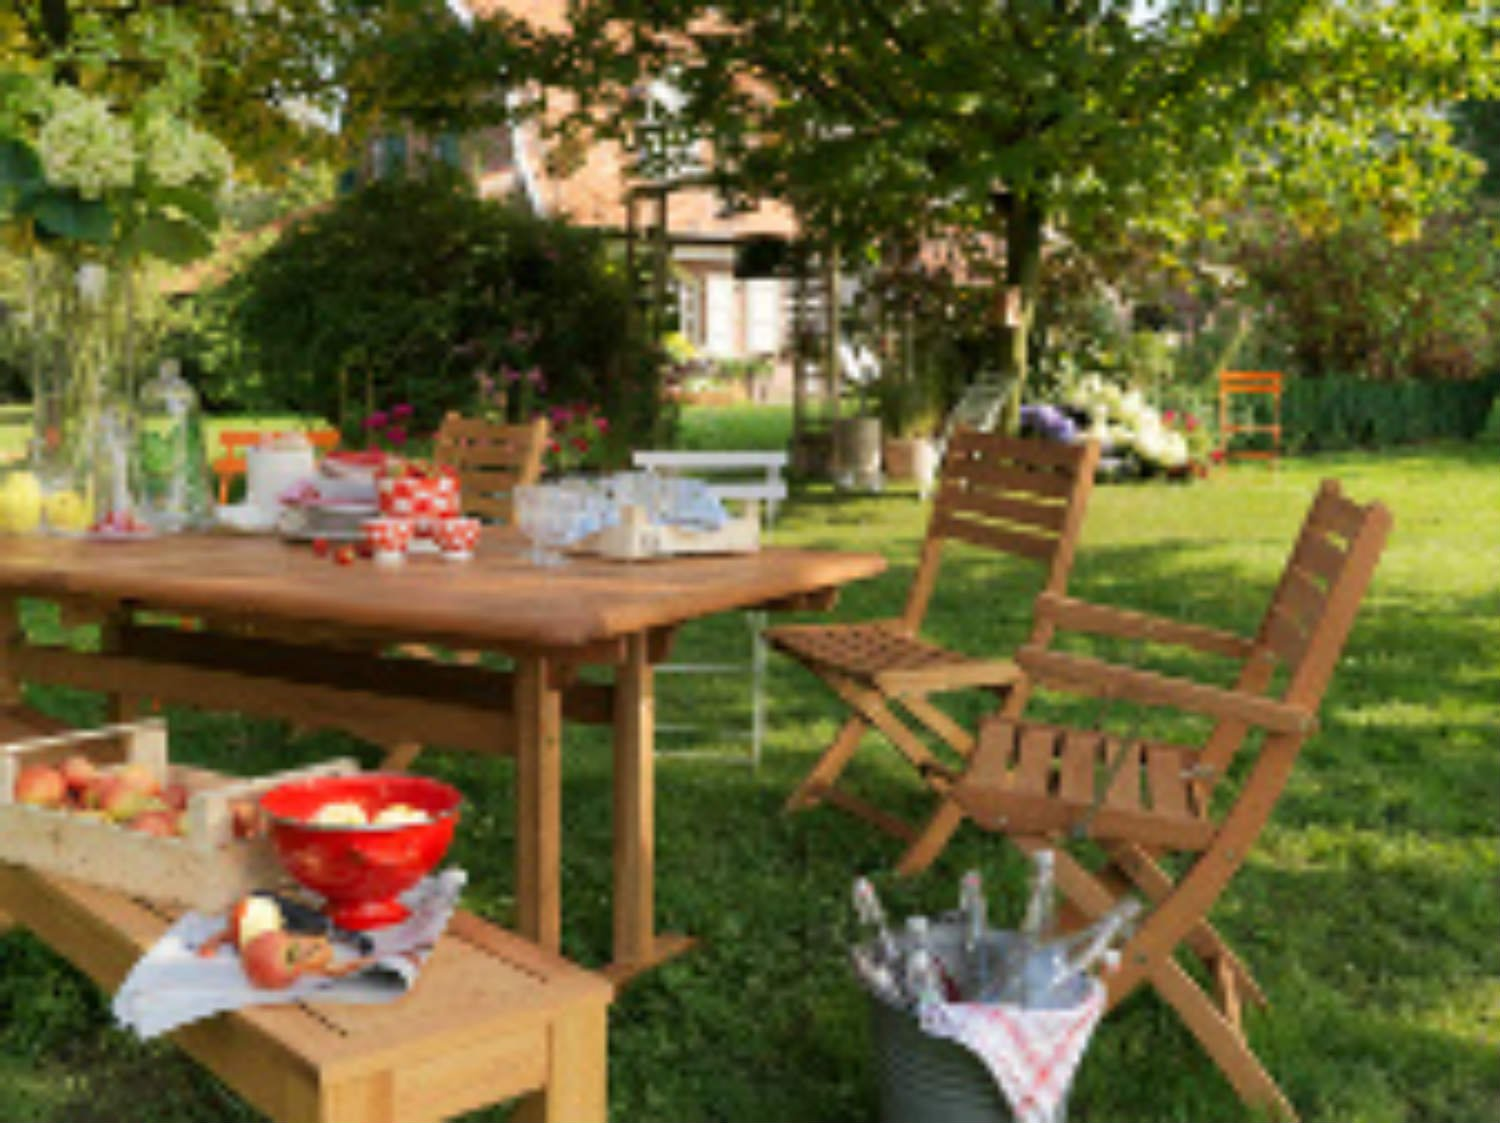 Comment amenager un salon de jardin - Comment renover un salon de jardin en bois ...